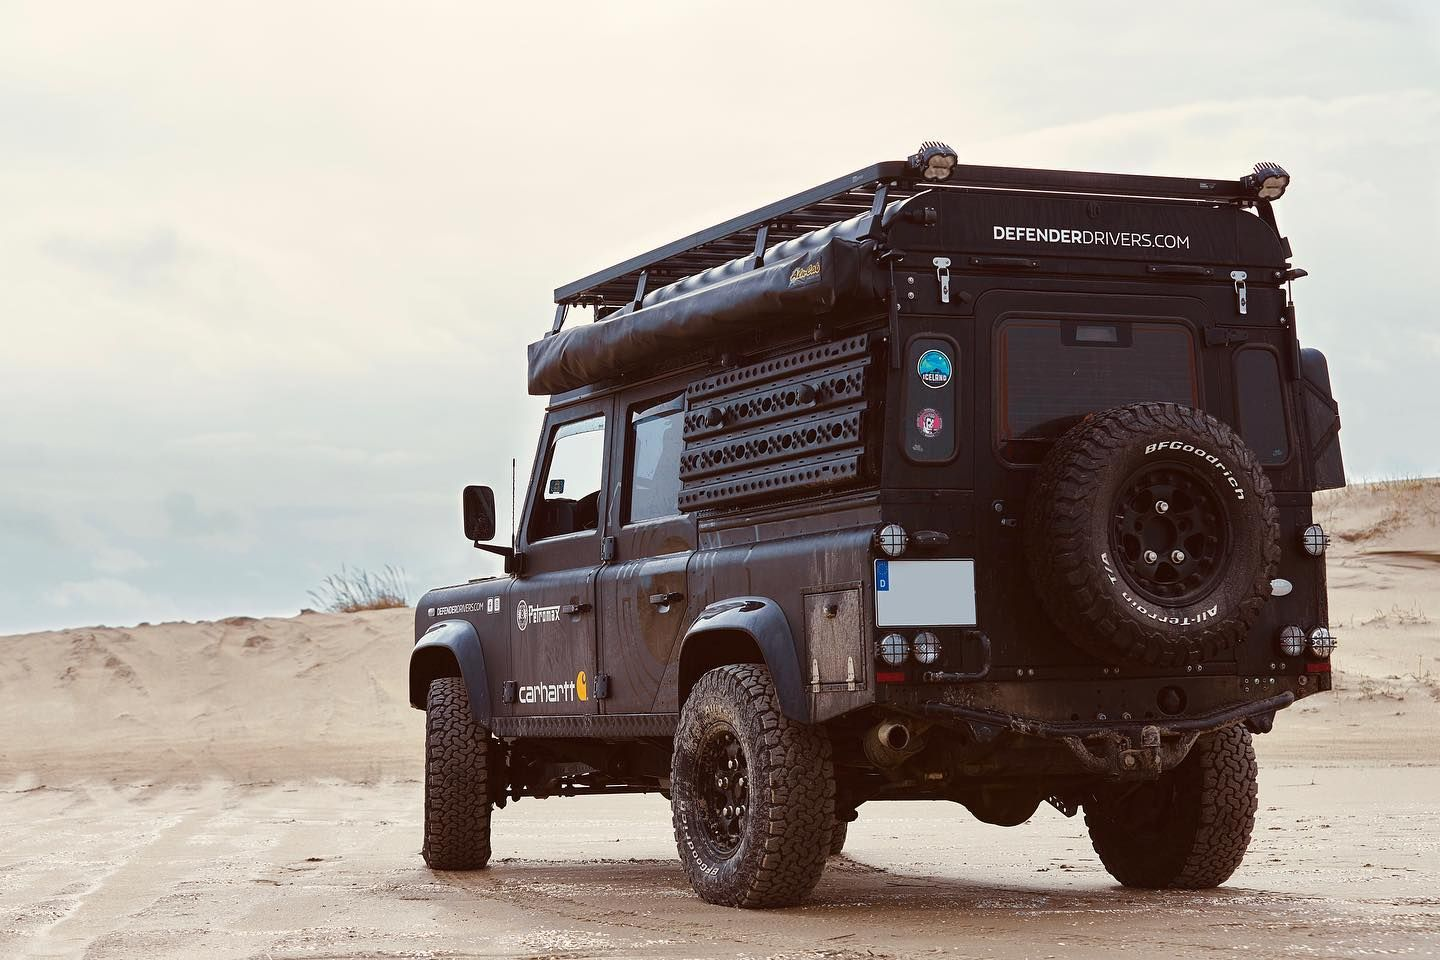 The Land Rover (from 1990 Land Rover Defender) is an off